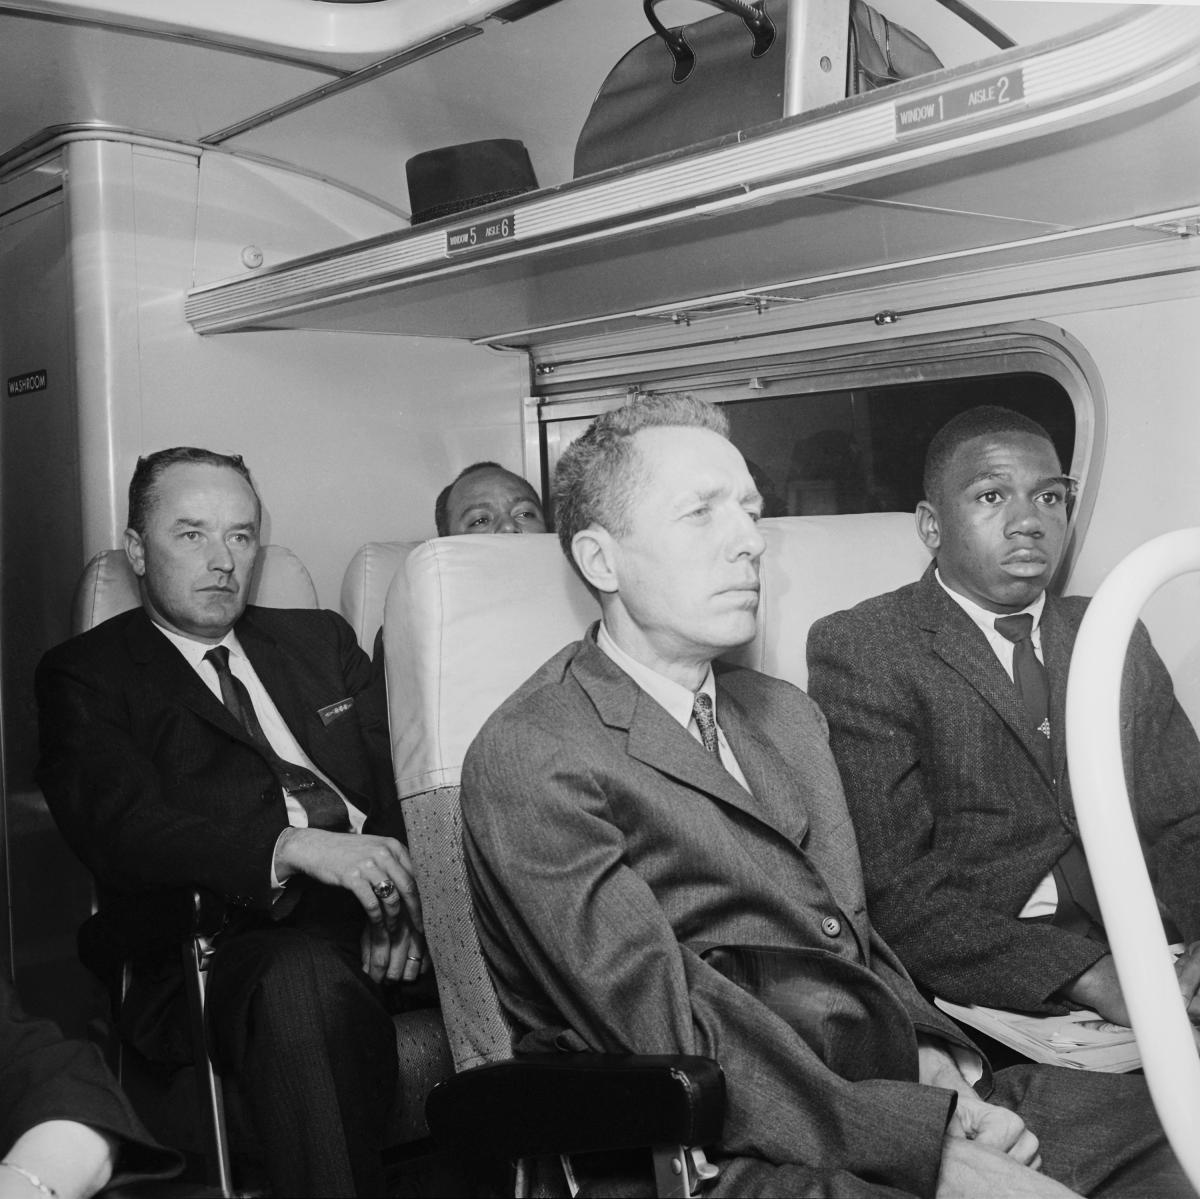 A white man and an African American man, in suits, sit next to each other on one of the Freedom Riders' buses